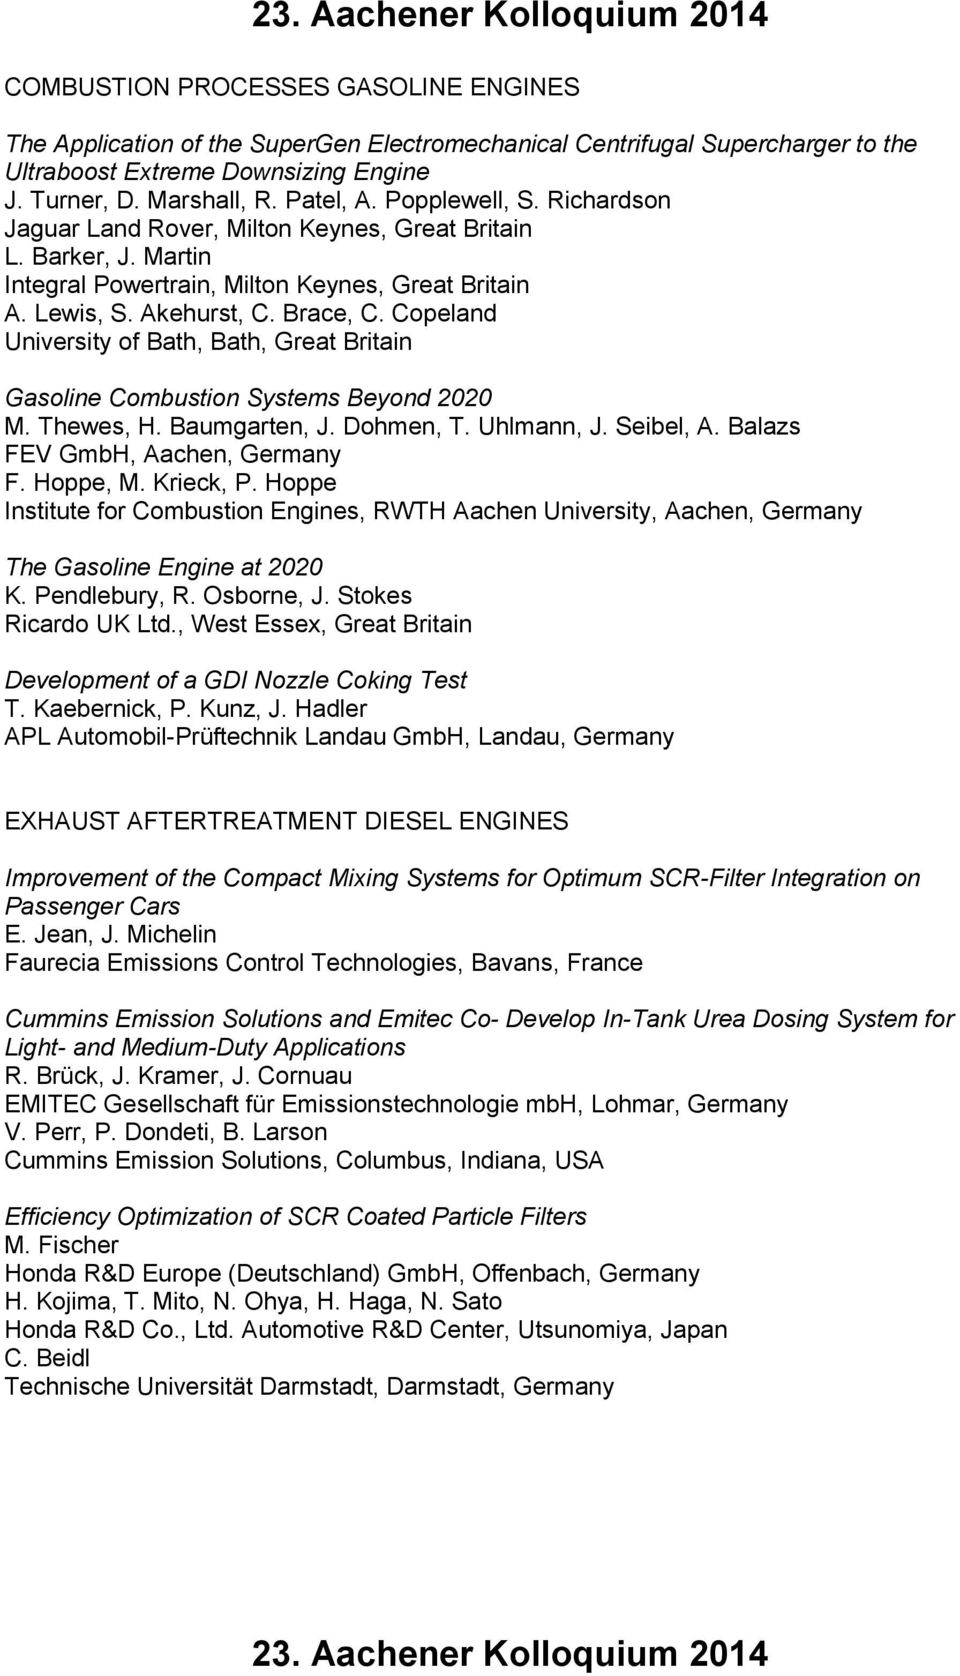 Brace, C. Copeland University of Bath, Bath, Great Britain Gasoline Combustion Systems Beyond 2020 M. Thewes, H. Baumgarten, J. Dohmen, T. Uhlmann, J. Seibel, A. Balazs FEV GmbH, Aachen, Germany F.